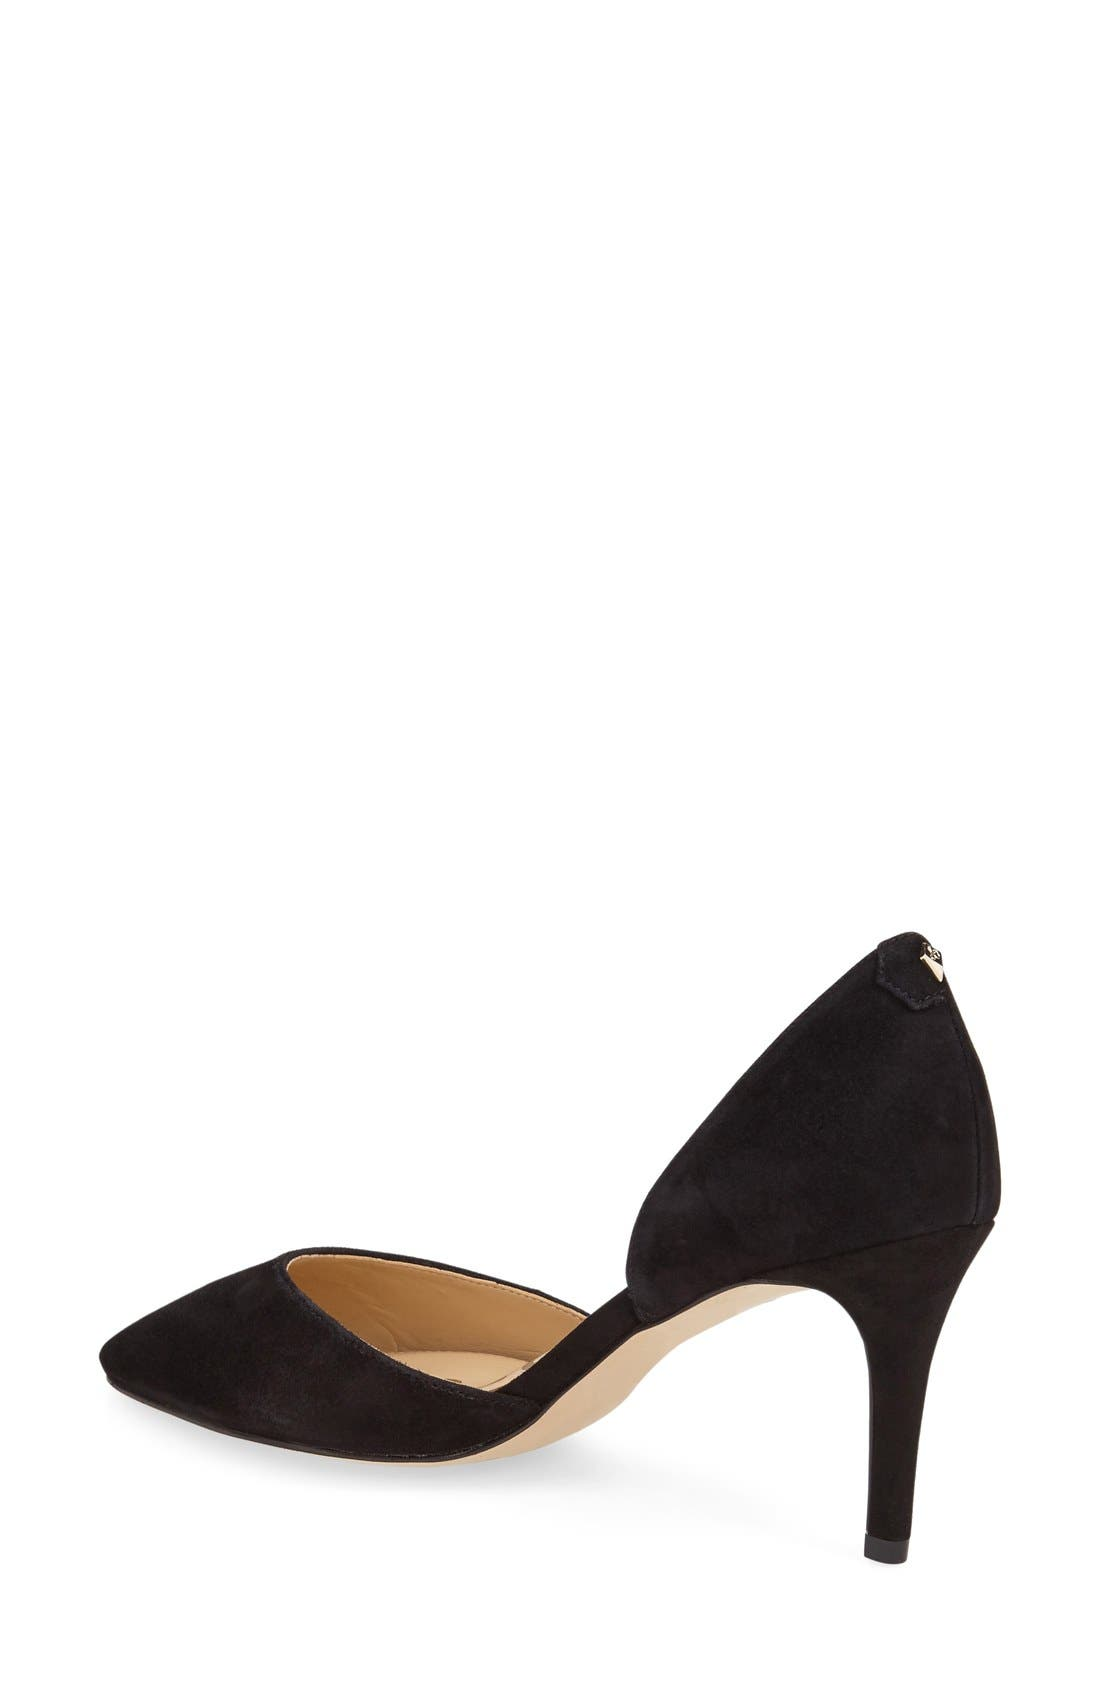 'Telsa' d'Orsay Pointy Toe Pump,                             Alternate thumbnail 21, color,